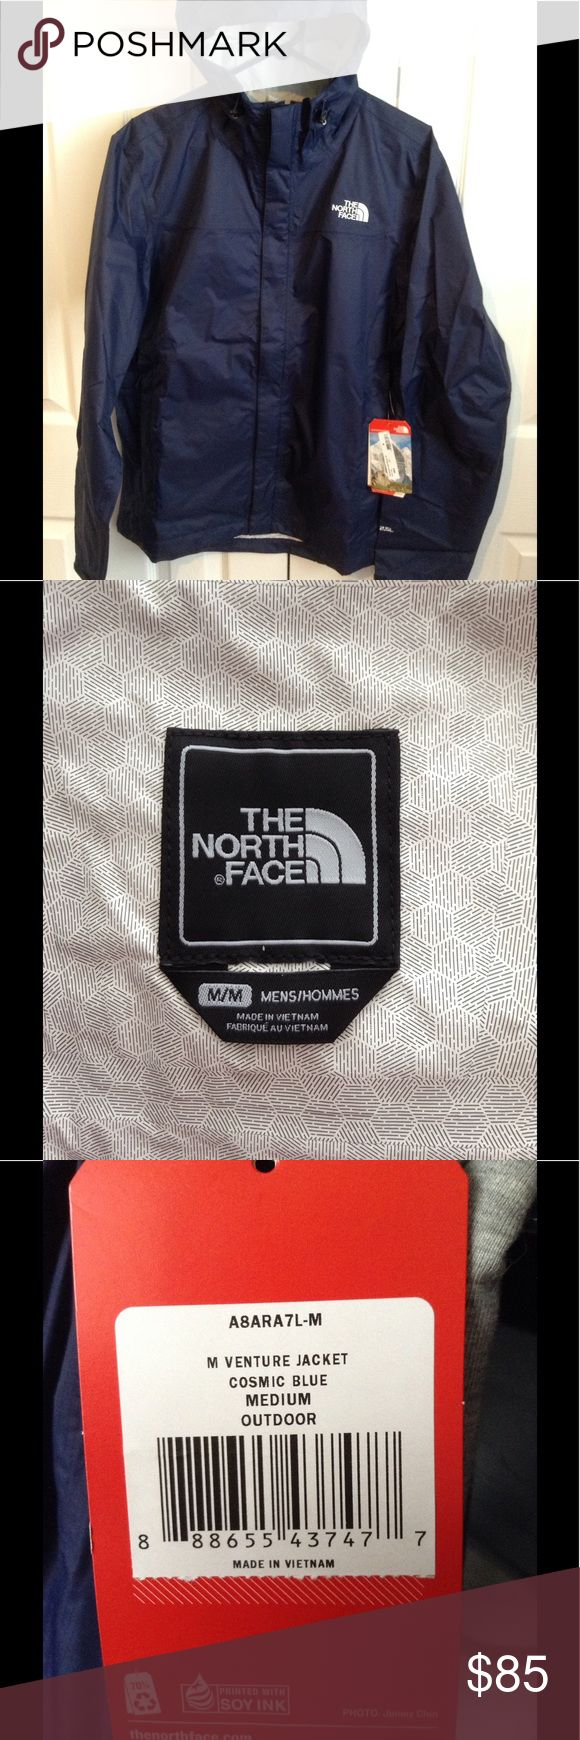 THE NORTH FACE Men's Jacket NWT.  ☔️Waterproof Men's Venture Jacket . Navy color .Never used.  ‼️SORRY NO TRADE‼️ The North Face Jackets & Coats Lightweight & Shirt Jackets